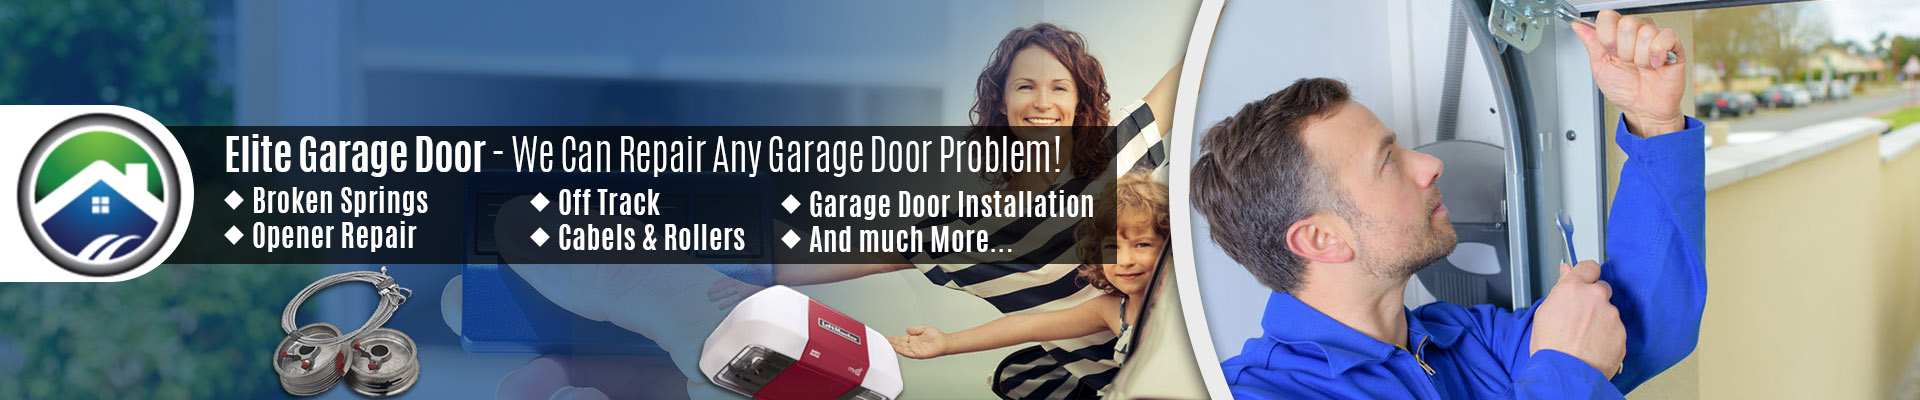 Garage Door Opener Repair By The Elite Tech Services, LLC